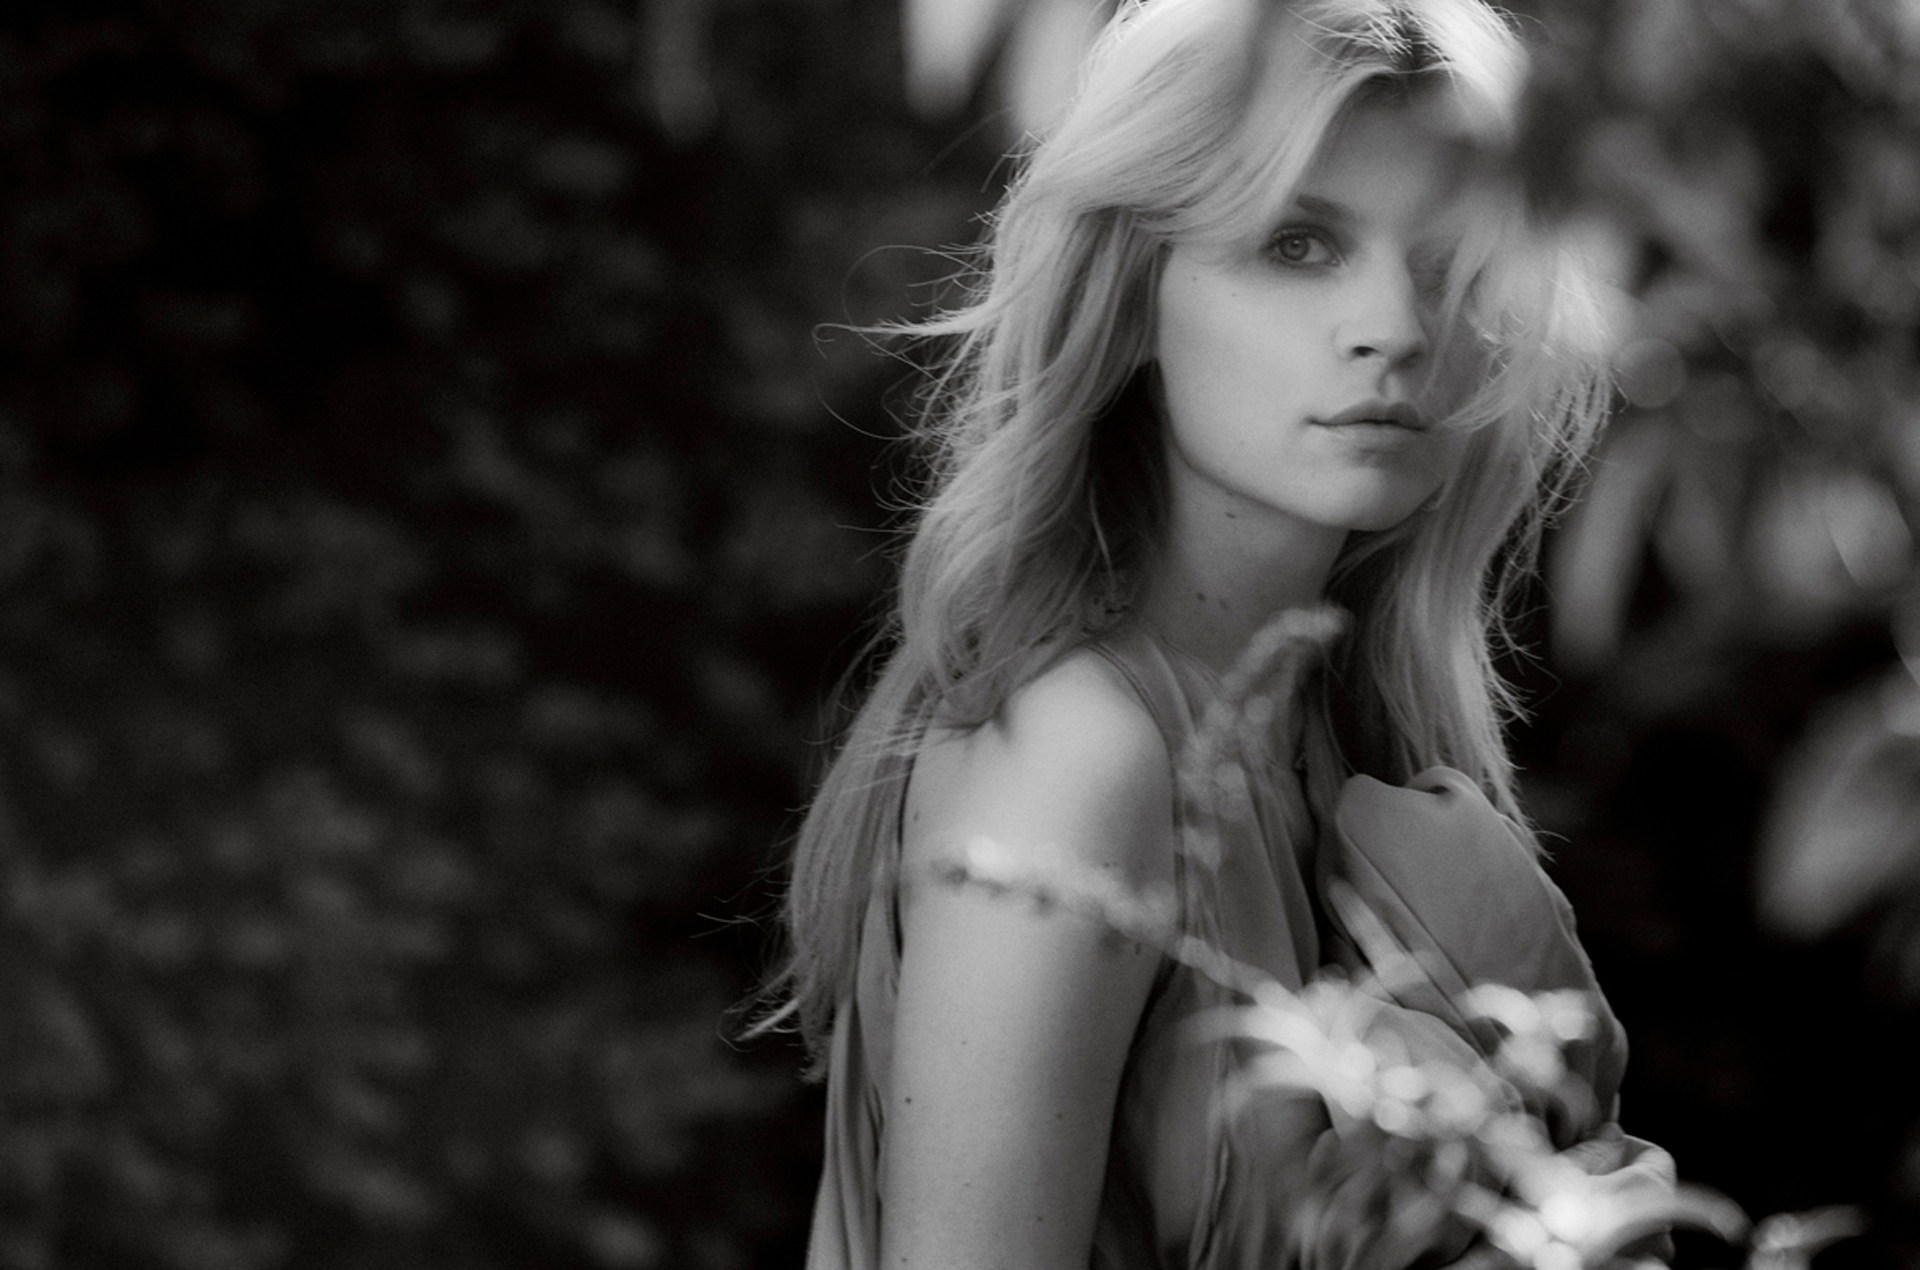 1920x1270 - Clemence Poesy Wallpapers 10